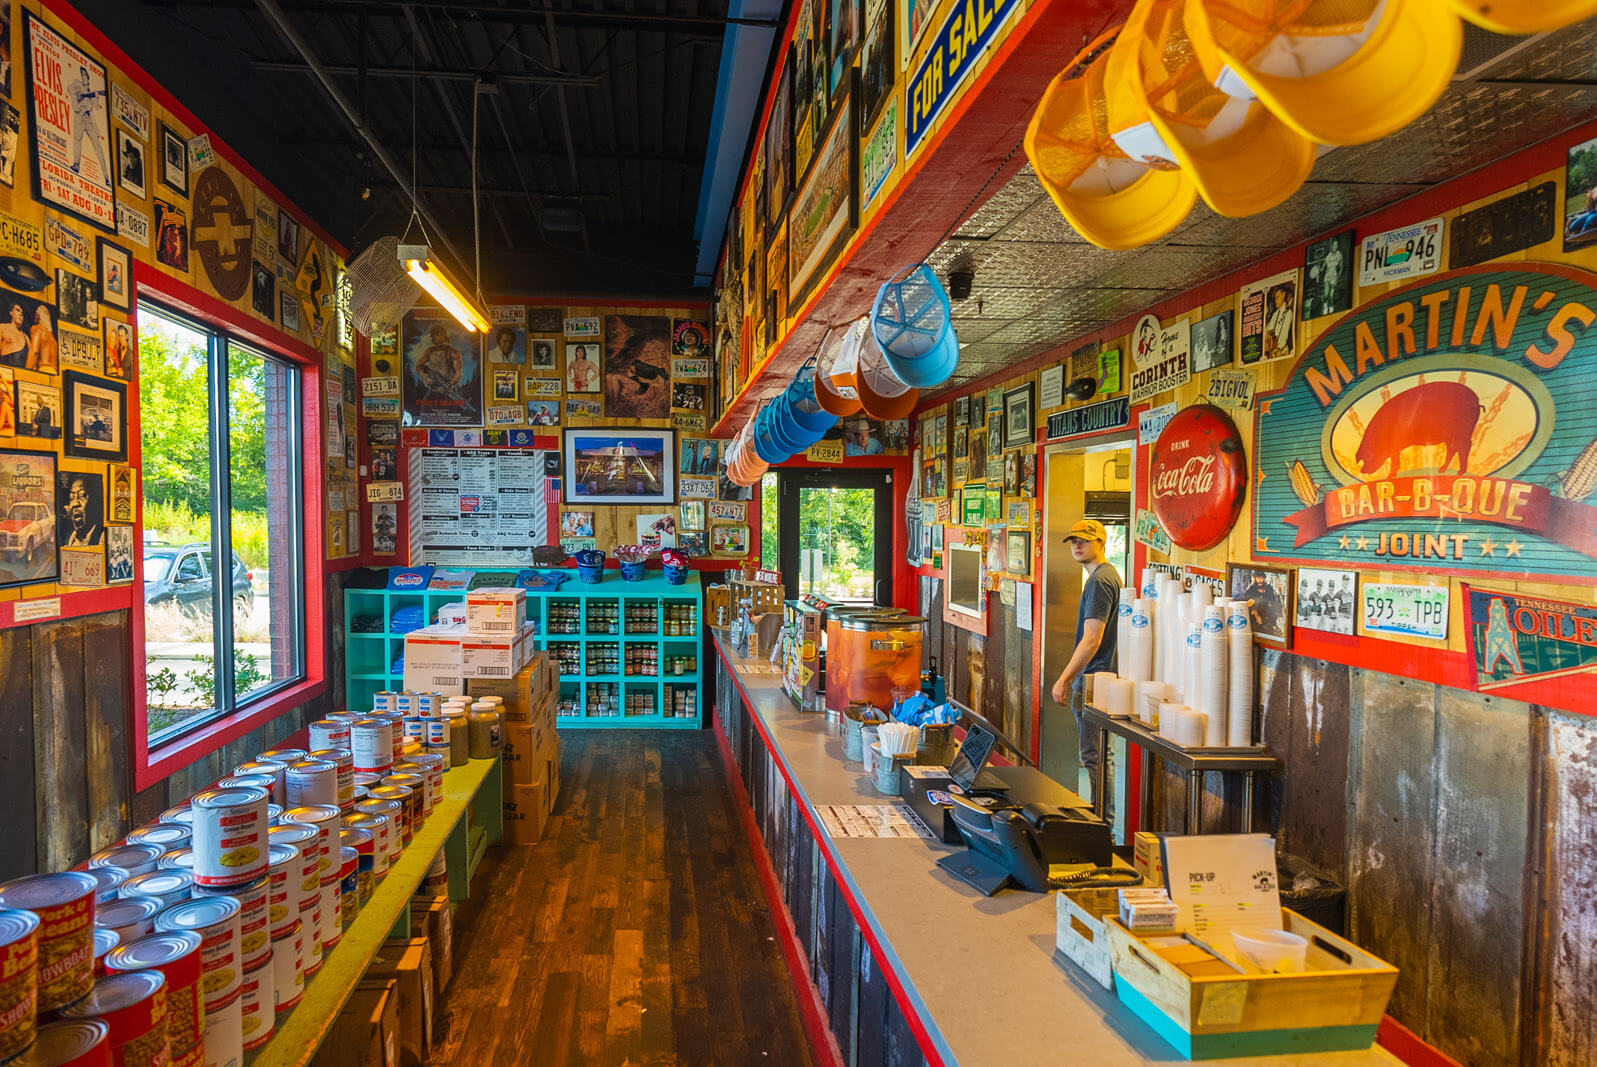 fun and colorful interior of the Original Martin's BBQ Joint in nolensville tennessee